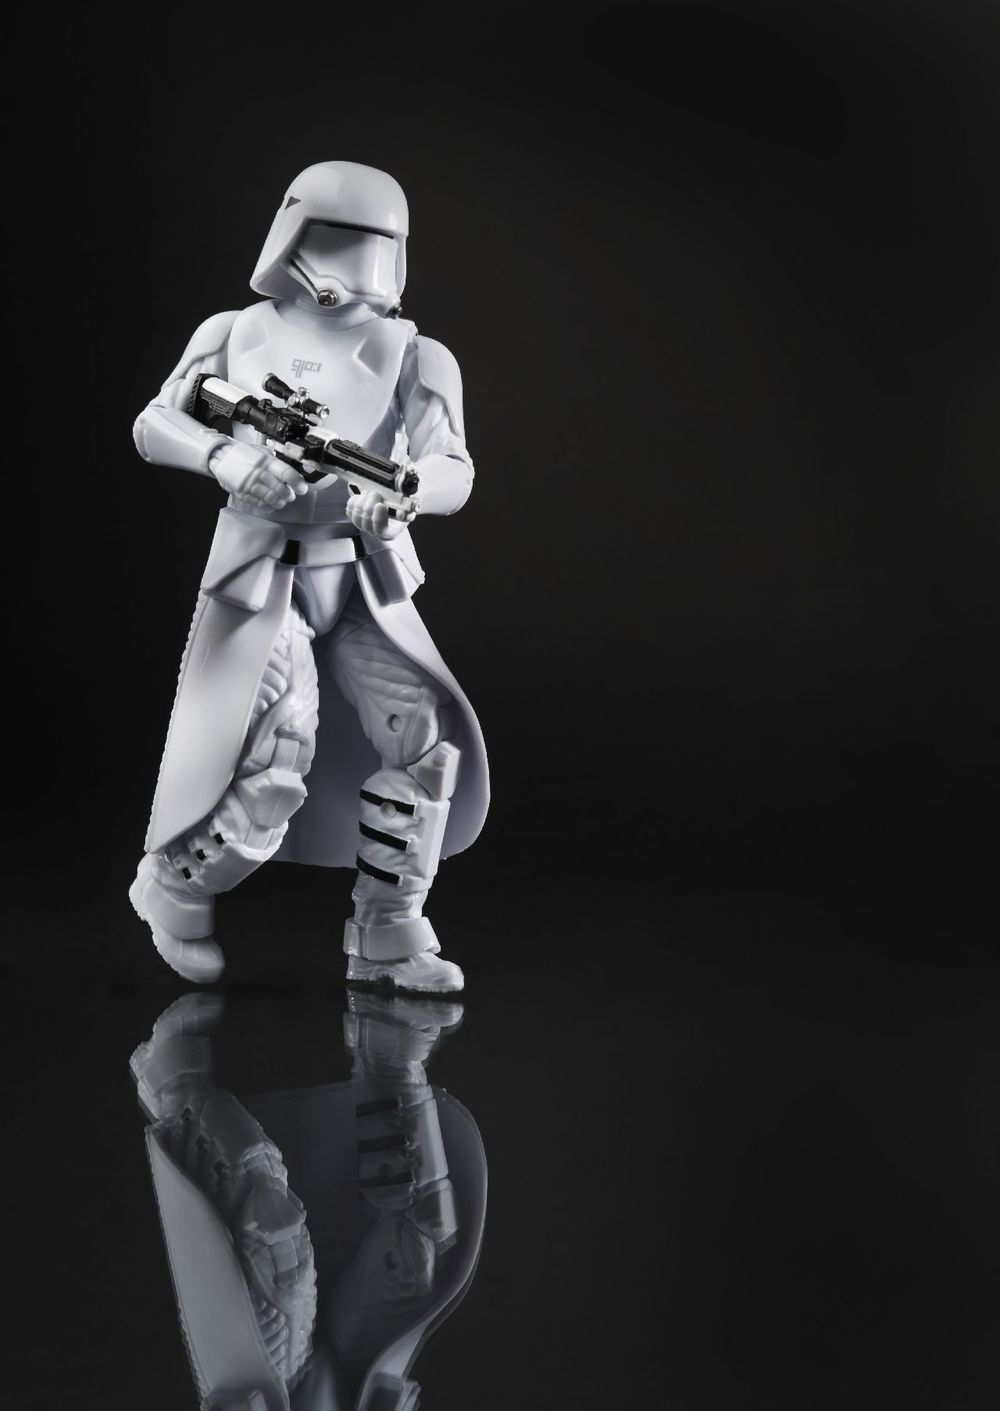 new-star-wars-the-force-awakens-action-figures-revealed-including-han-solo5